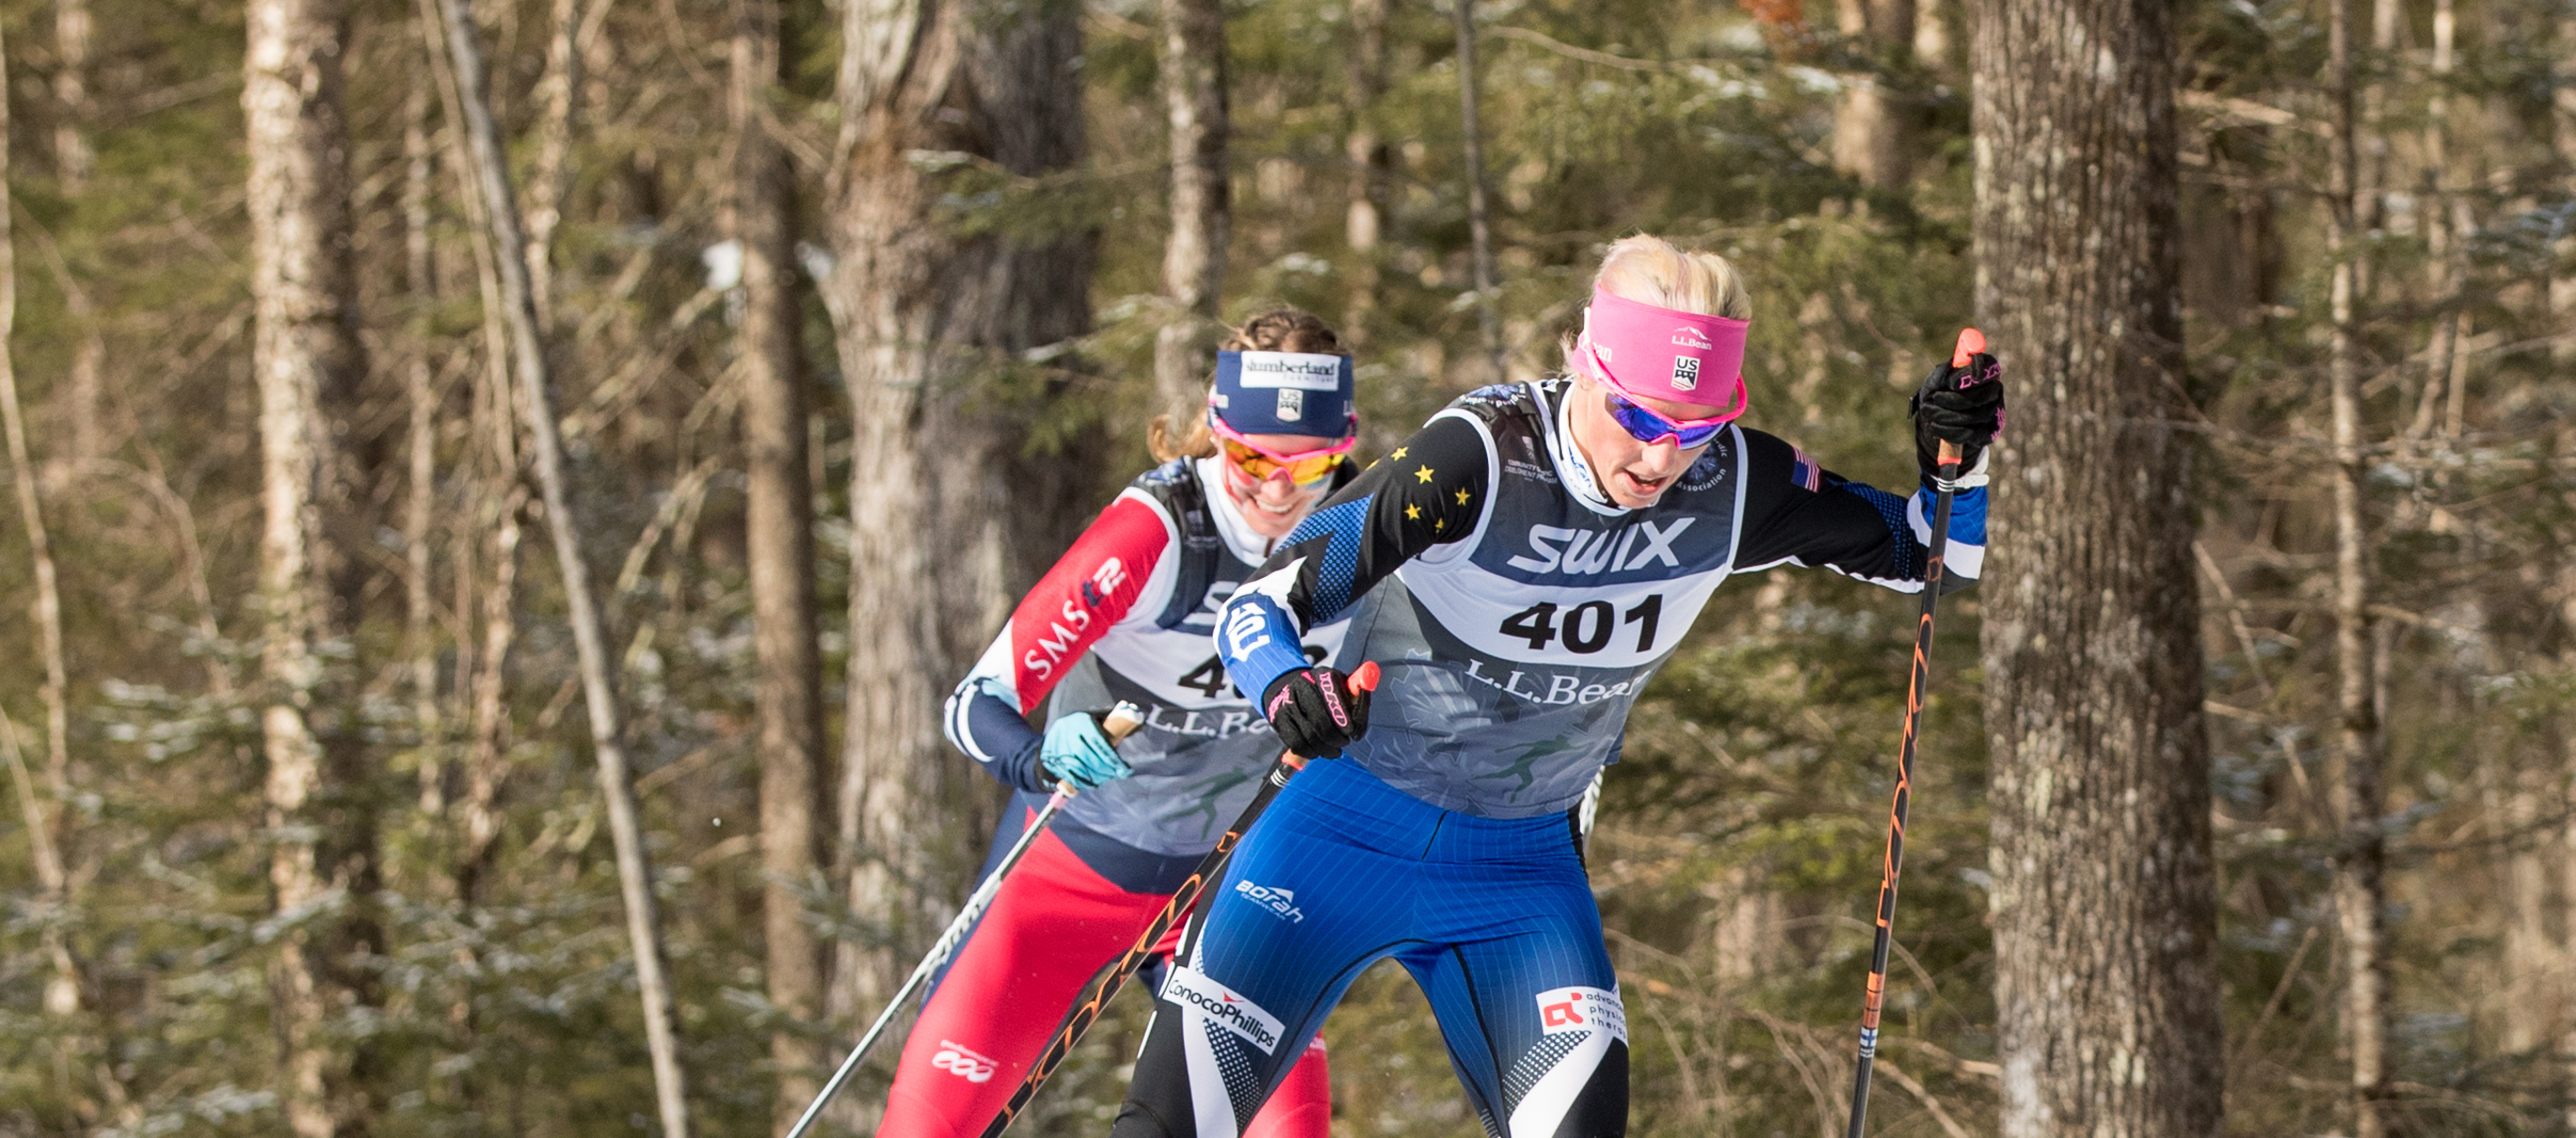 Kikkan Randall leads Jessie Diggins in the final leg at the L.L.Bean U.S. Cross Country Championships team relay Sunday. (U.S. Ski & Snowboard - Reese Brown)